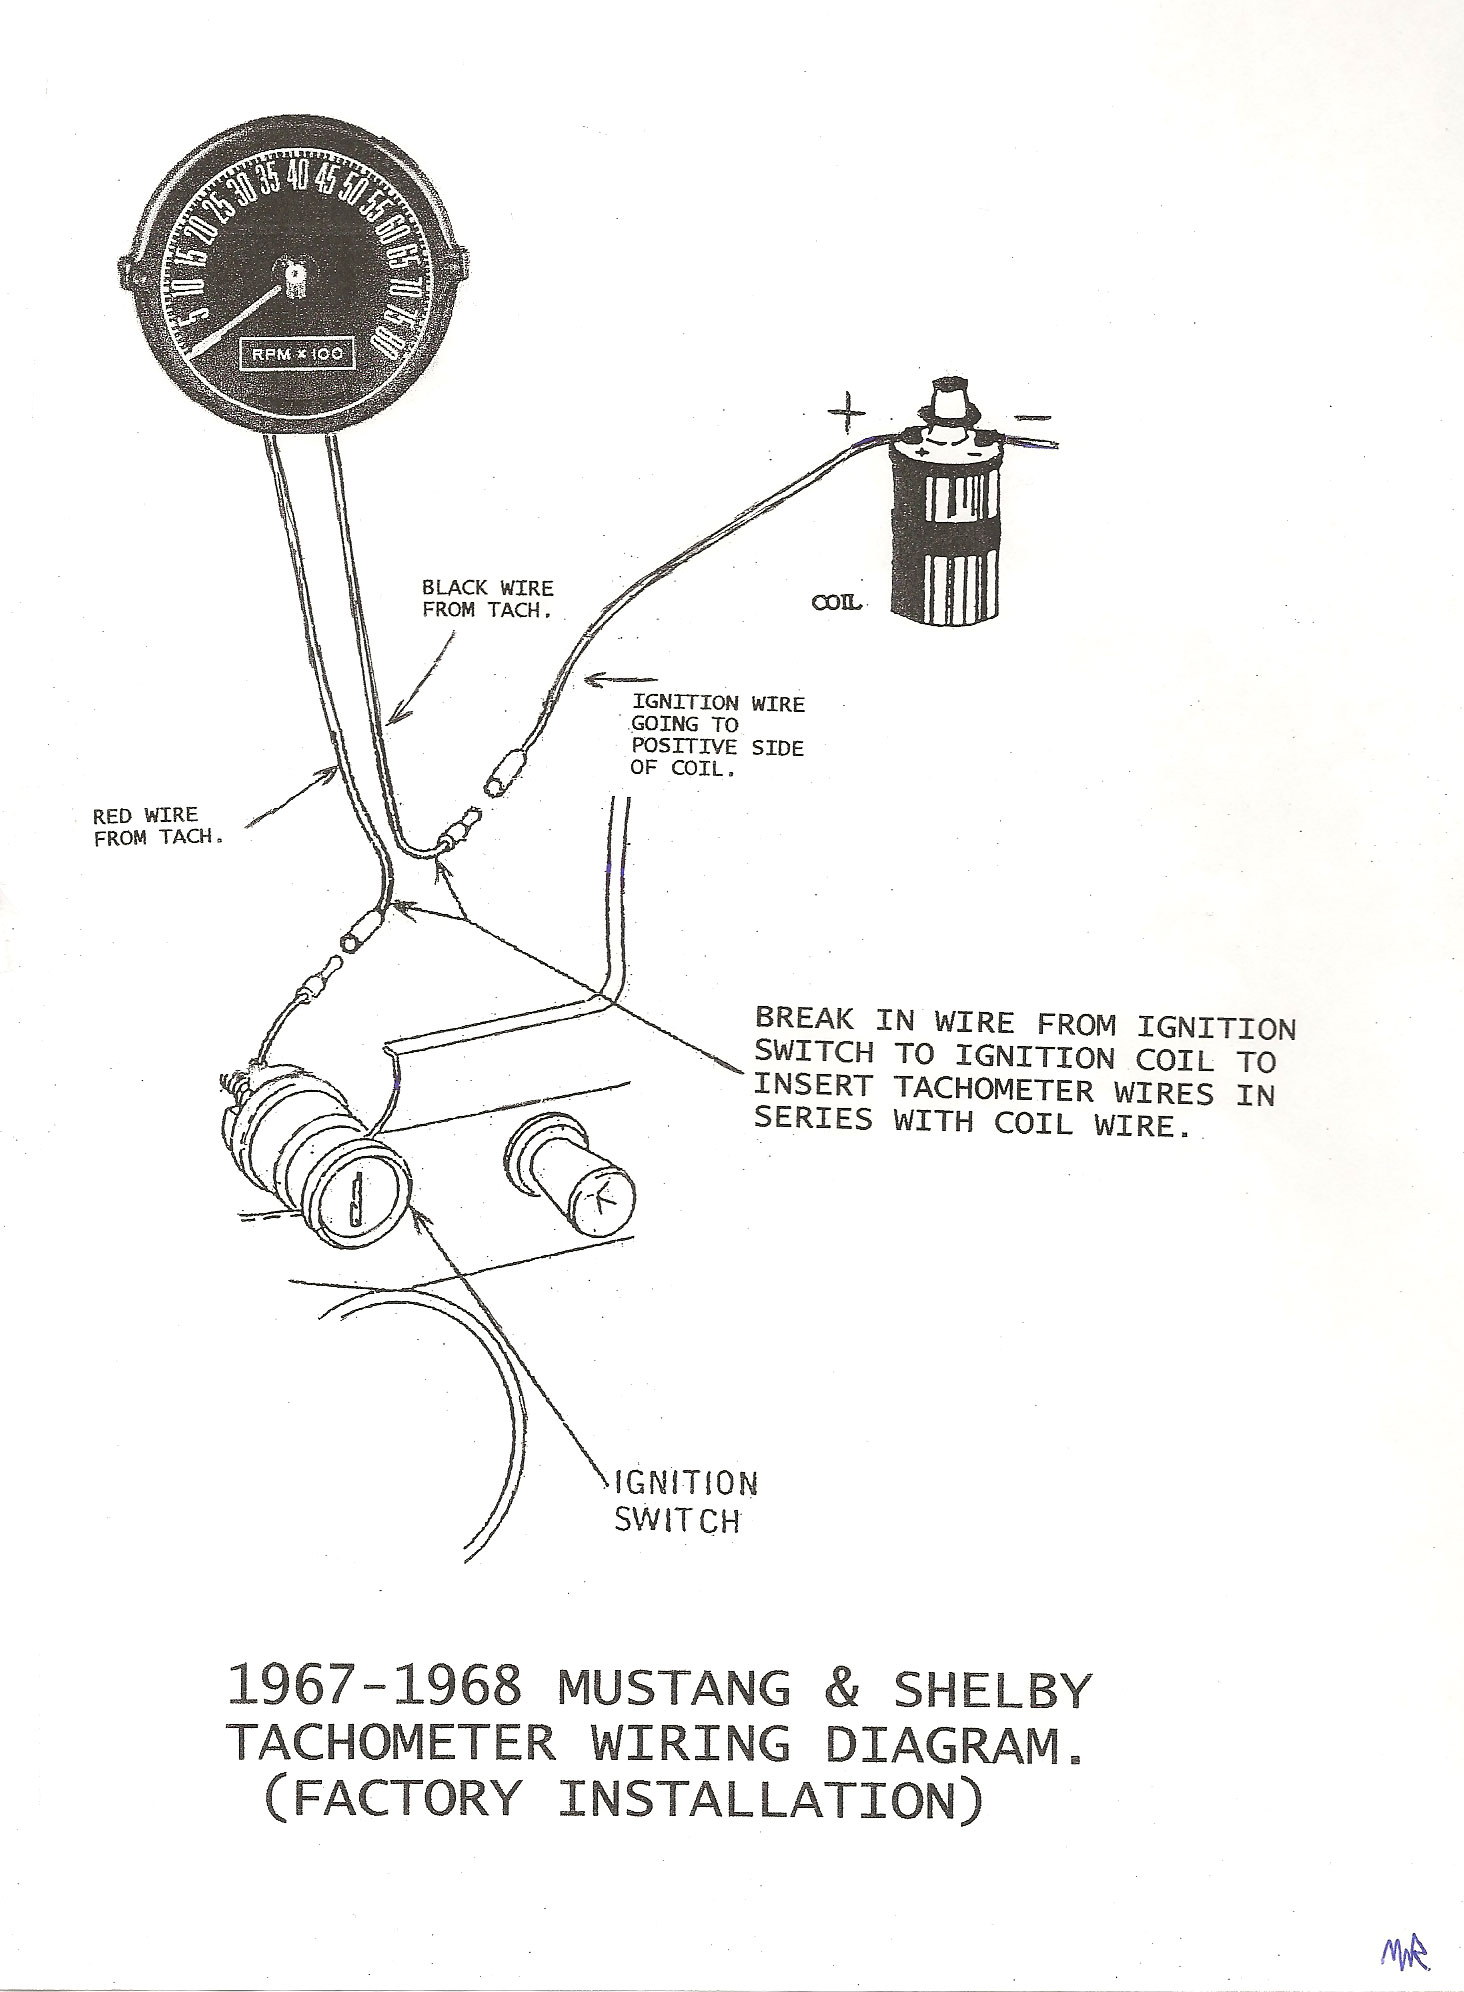 6768shelbytach tech info 5 tachometer wiring diagram at panicattacktreatment.co